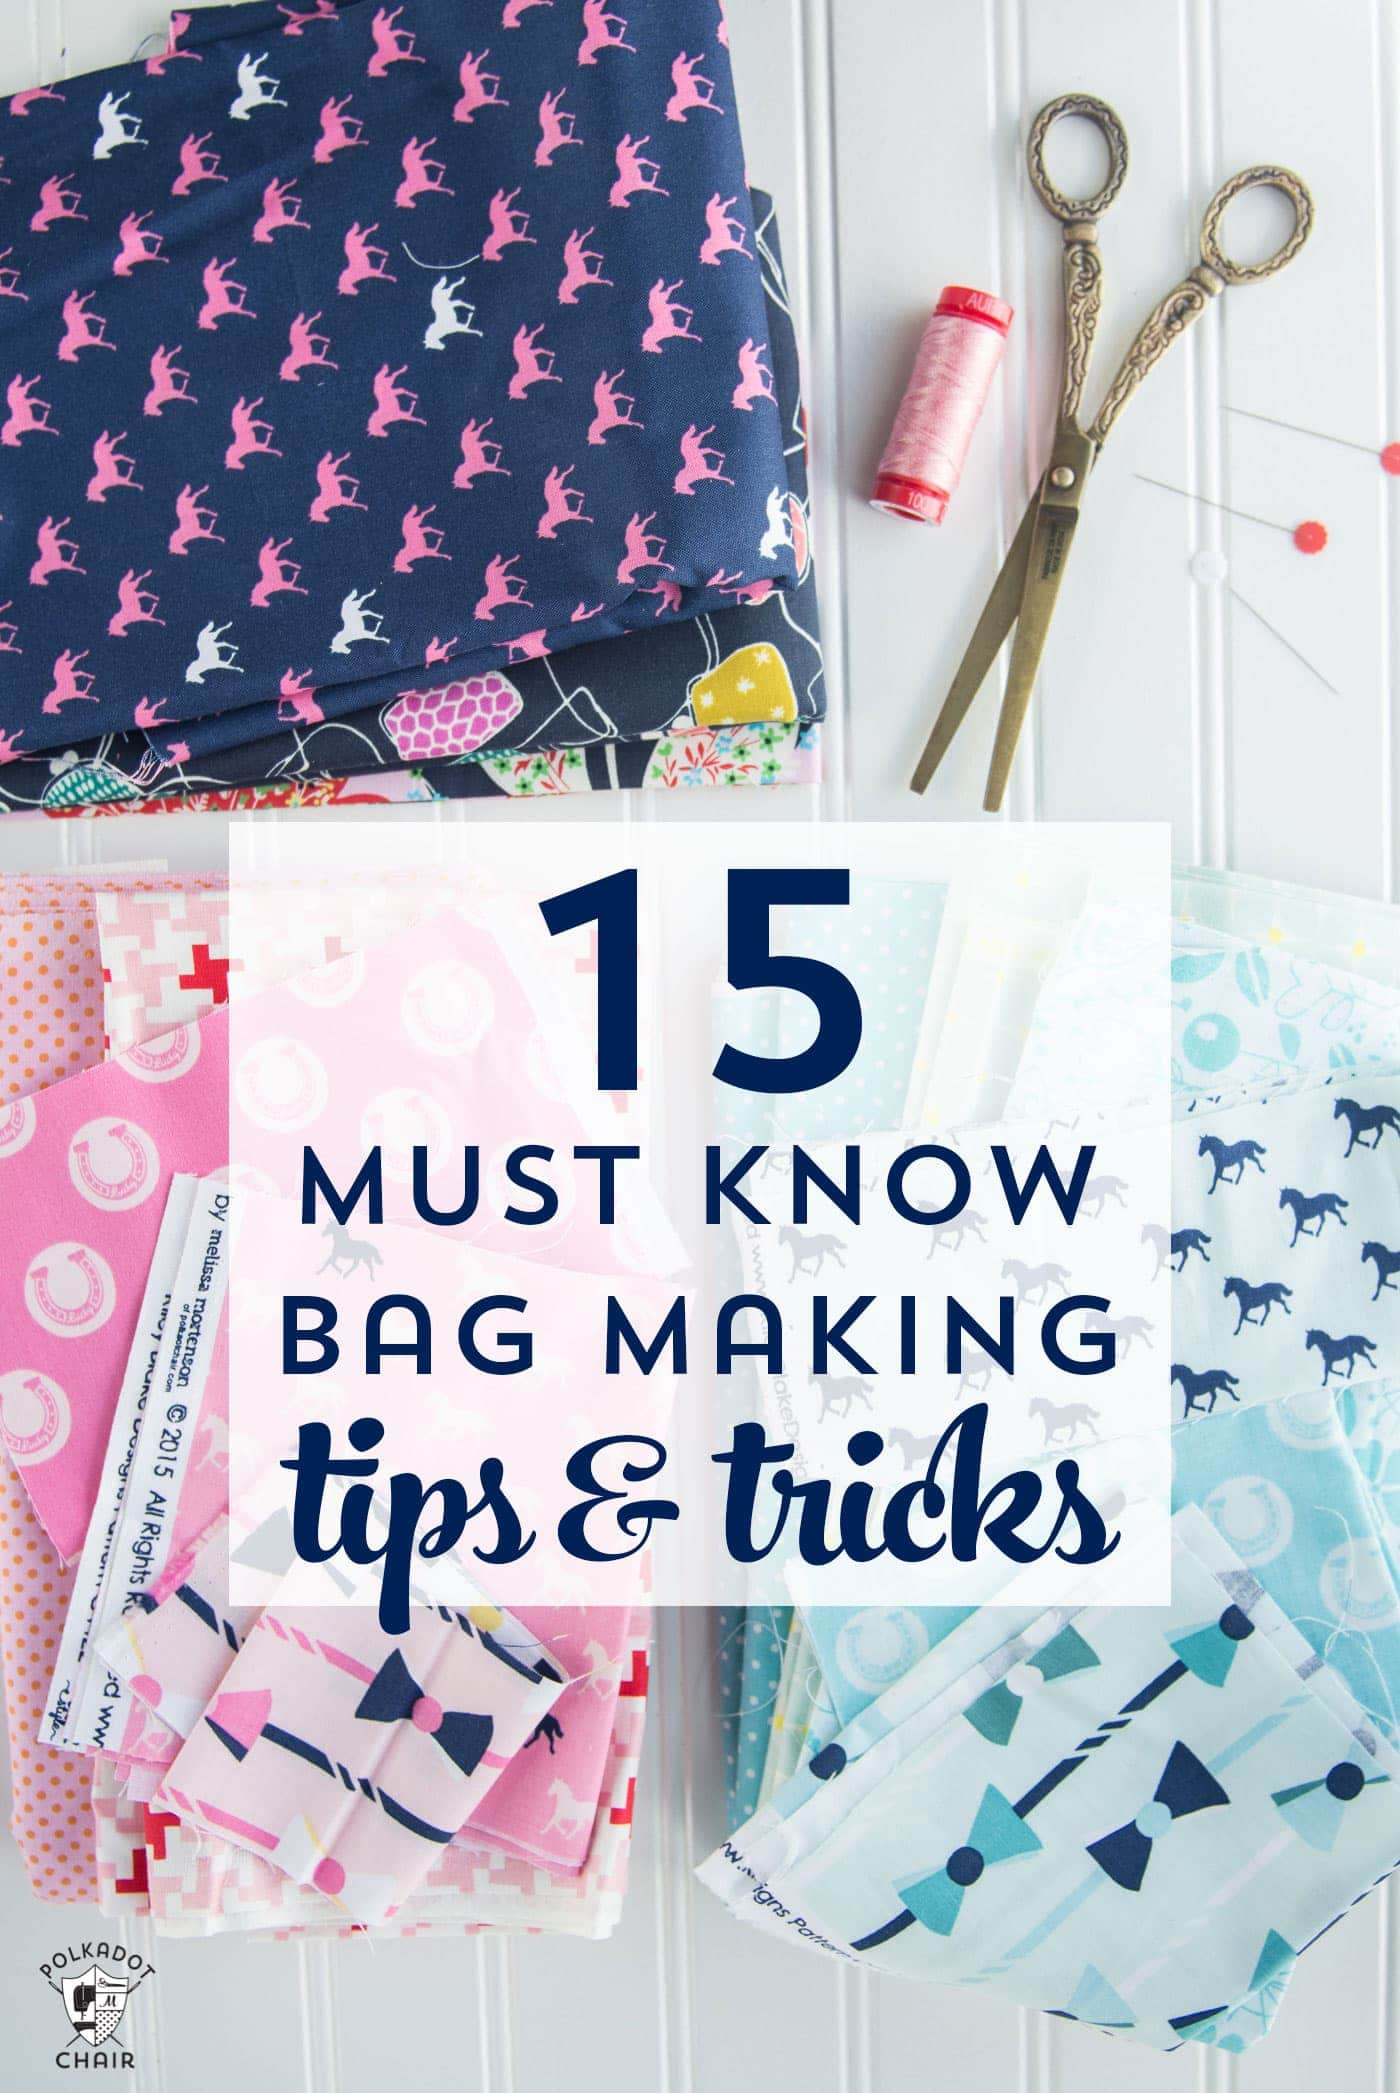 15 Must Know Bag Making Tips and Tricks